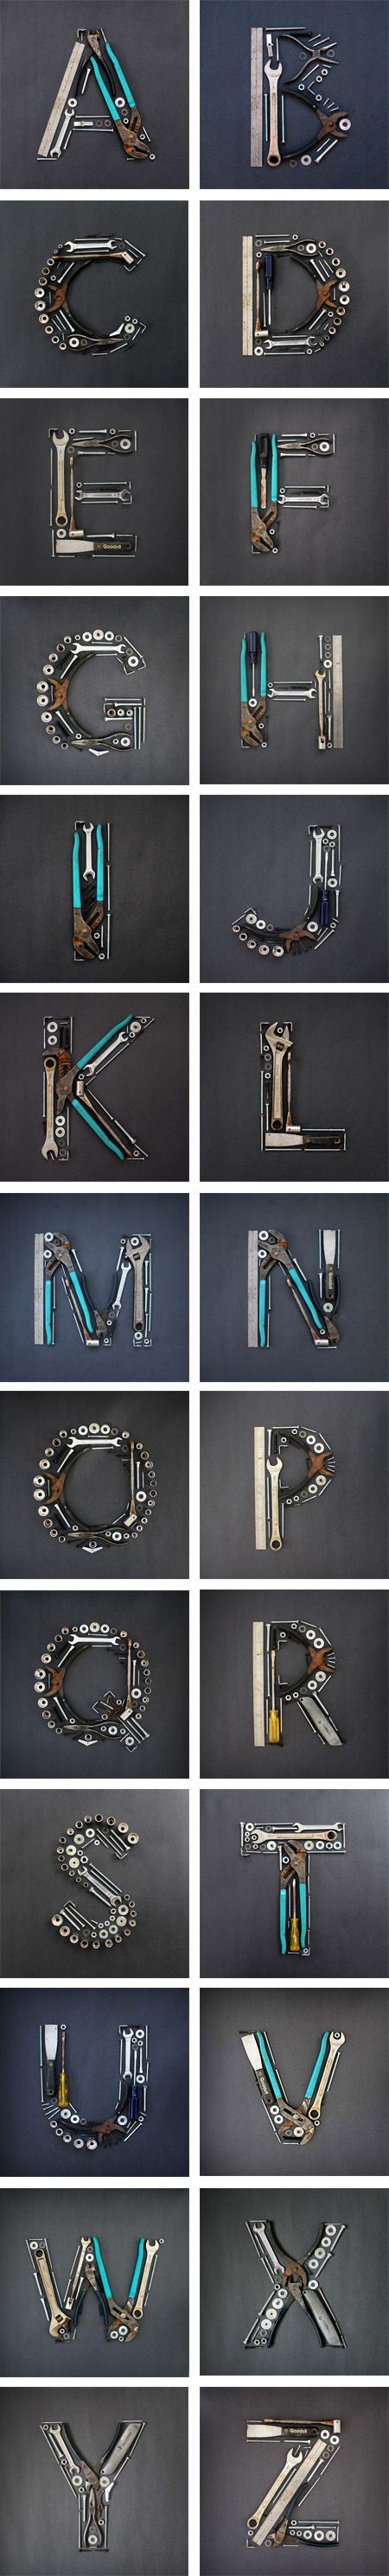 I love finding on-going projects that I discover right when they start—to see the progression and look forward to each day's post. This happened with the Tooling Around project by Joseph Alessio, who created this awesome A to Z experimental project with tools. Check out the entire alphabet below—cool, right?